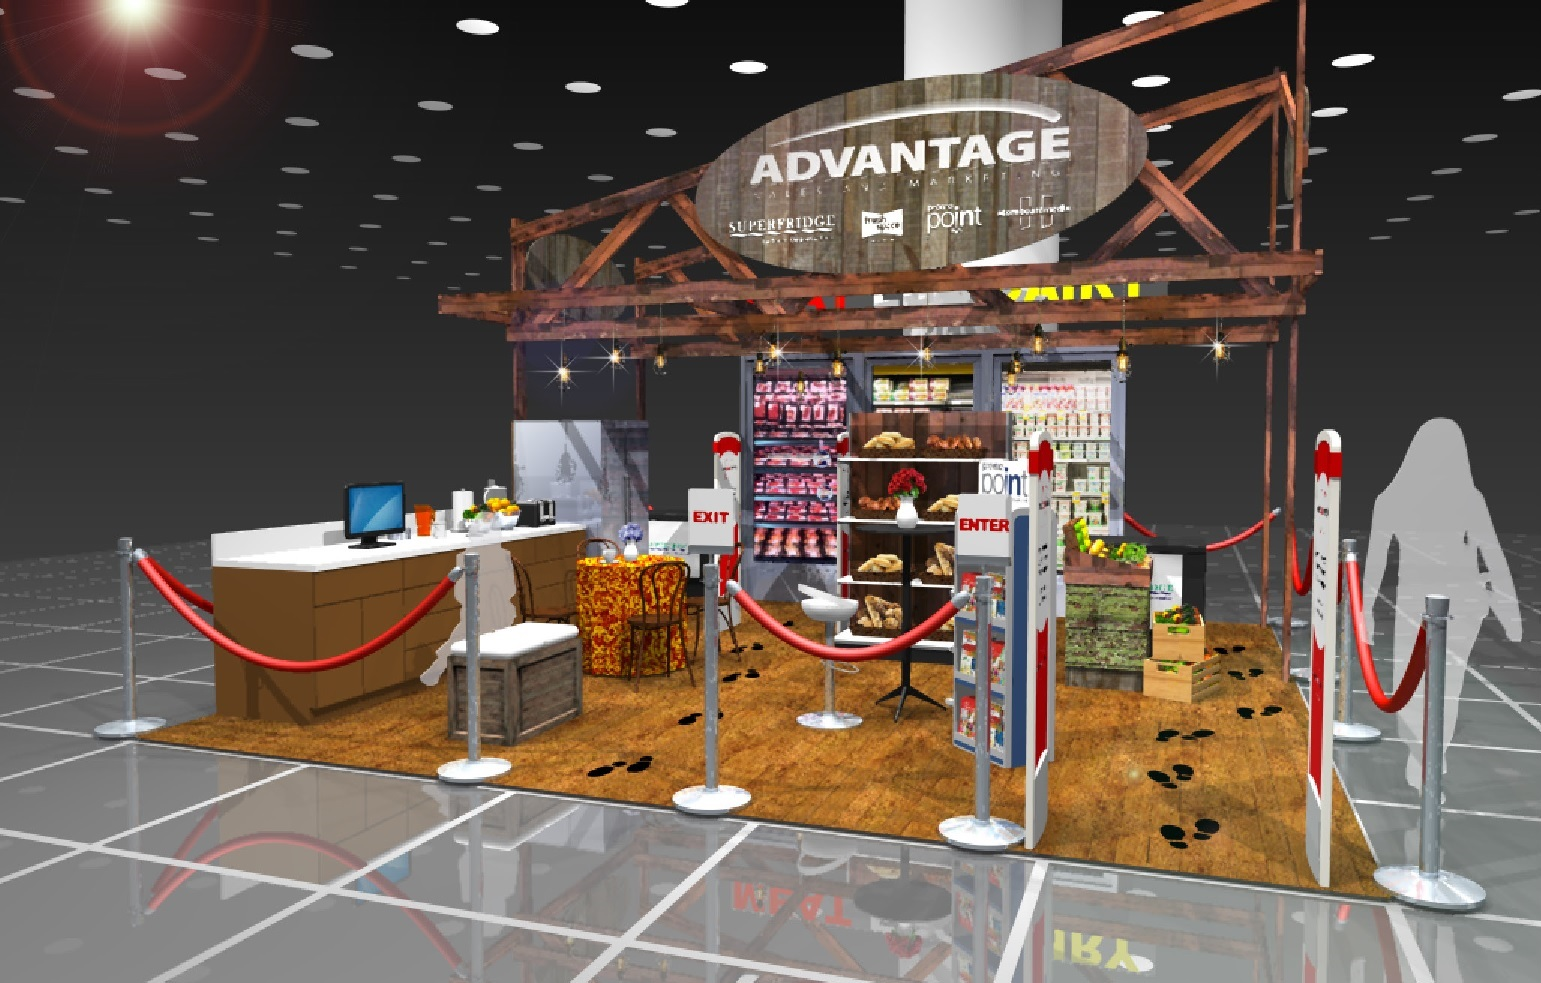 Trade show booth rendering including retail